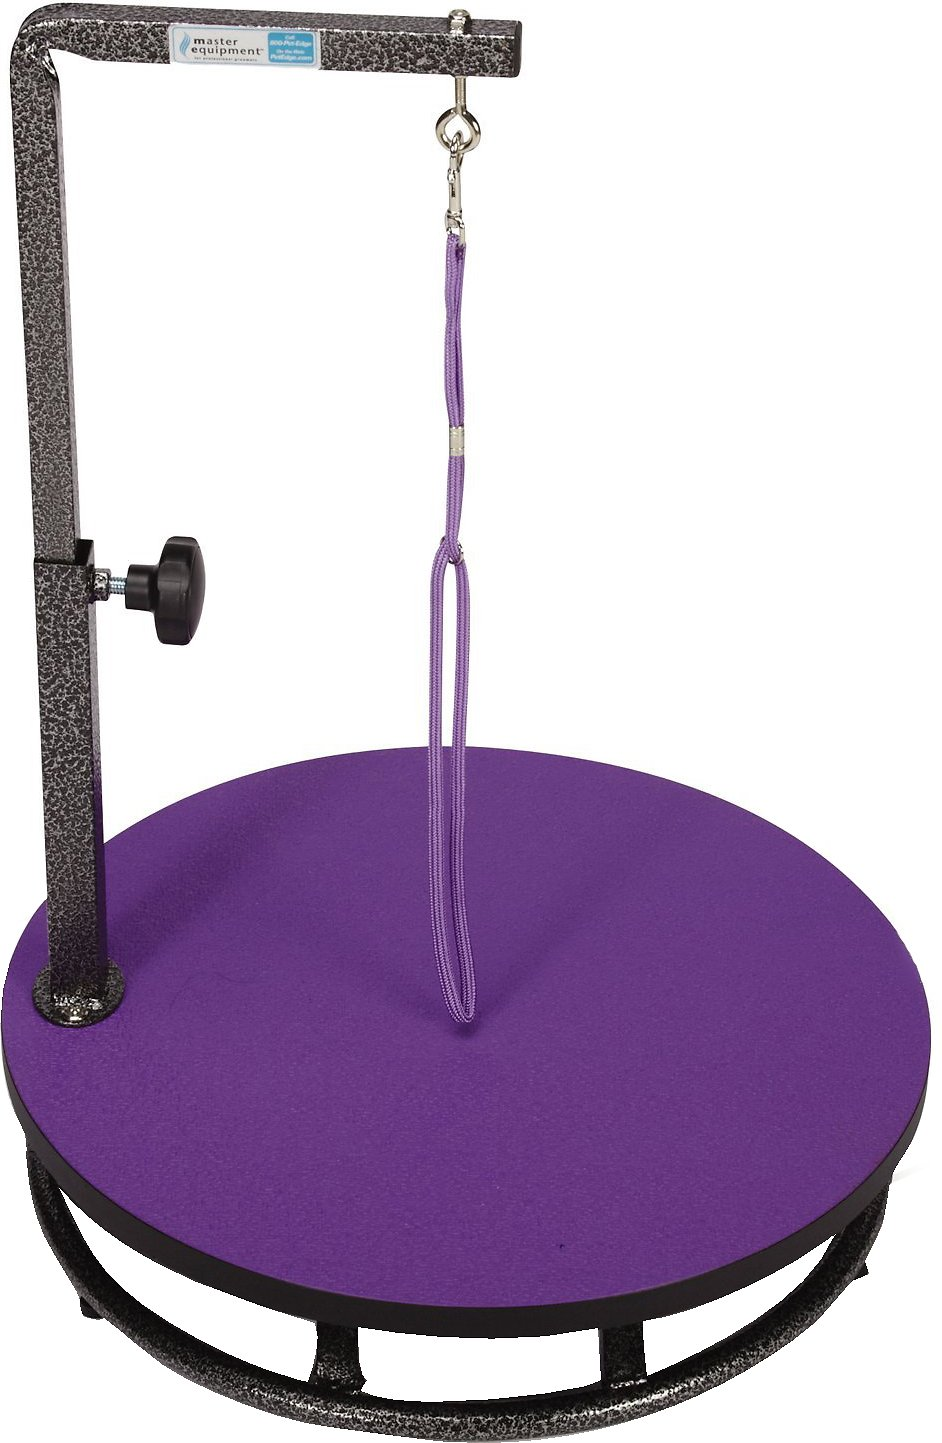 Master Equipment Small Dog Amp Cat Grooming Table Purple